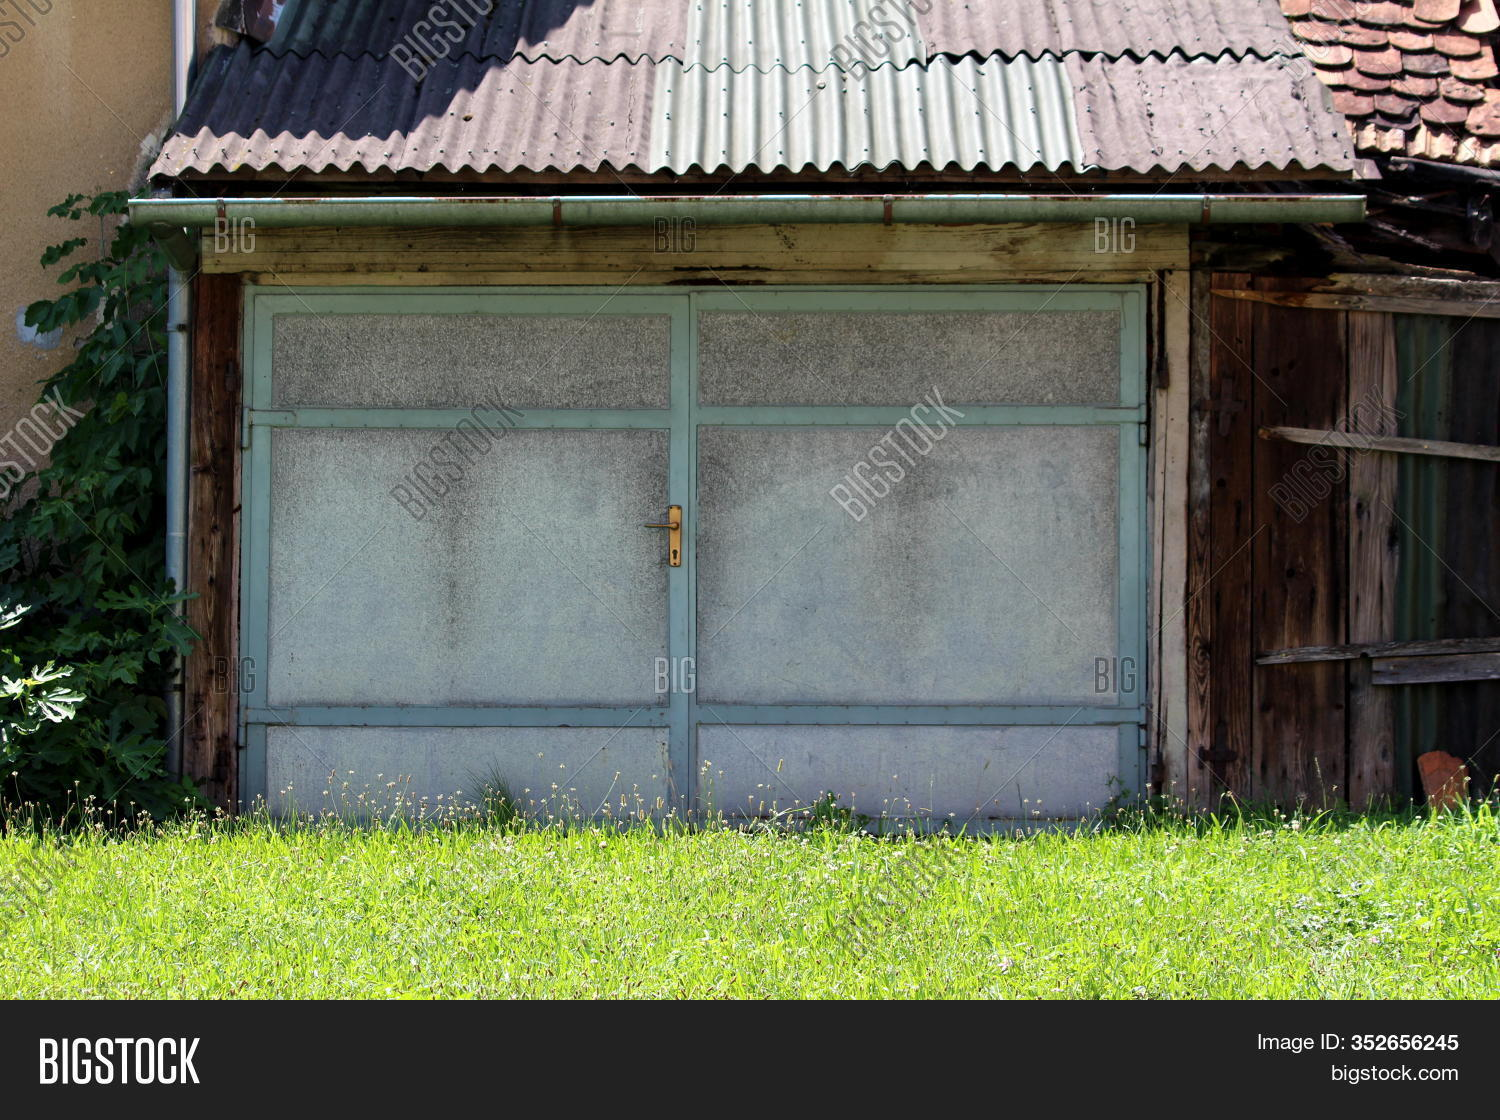 Double Elongated Large Image Photo Free Trial Bigstock